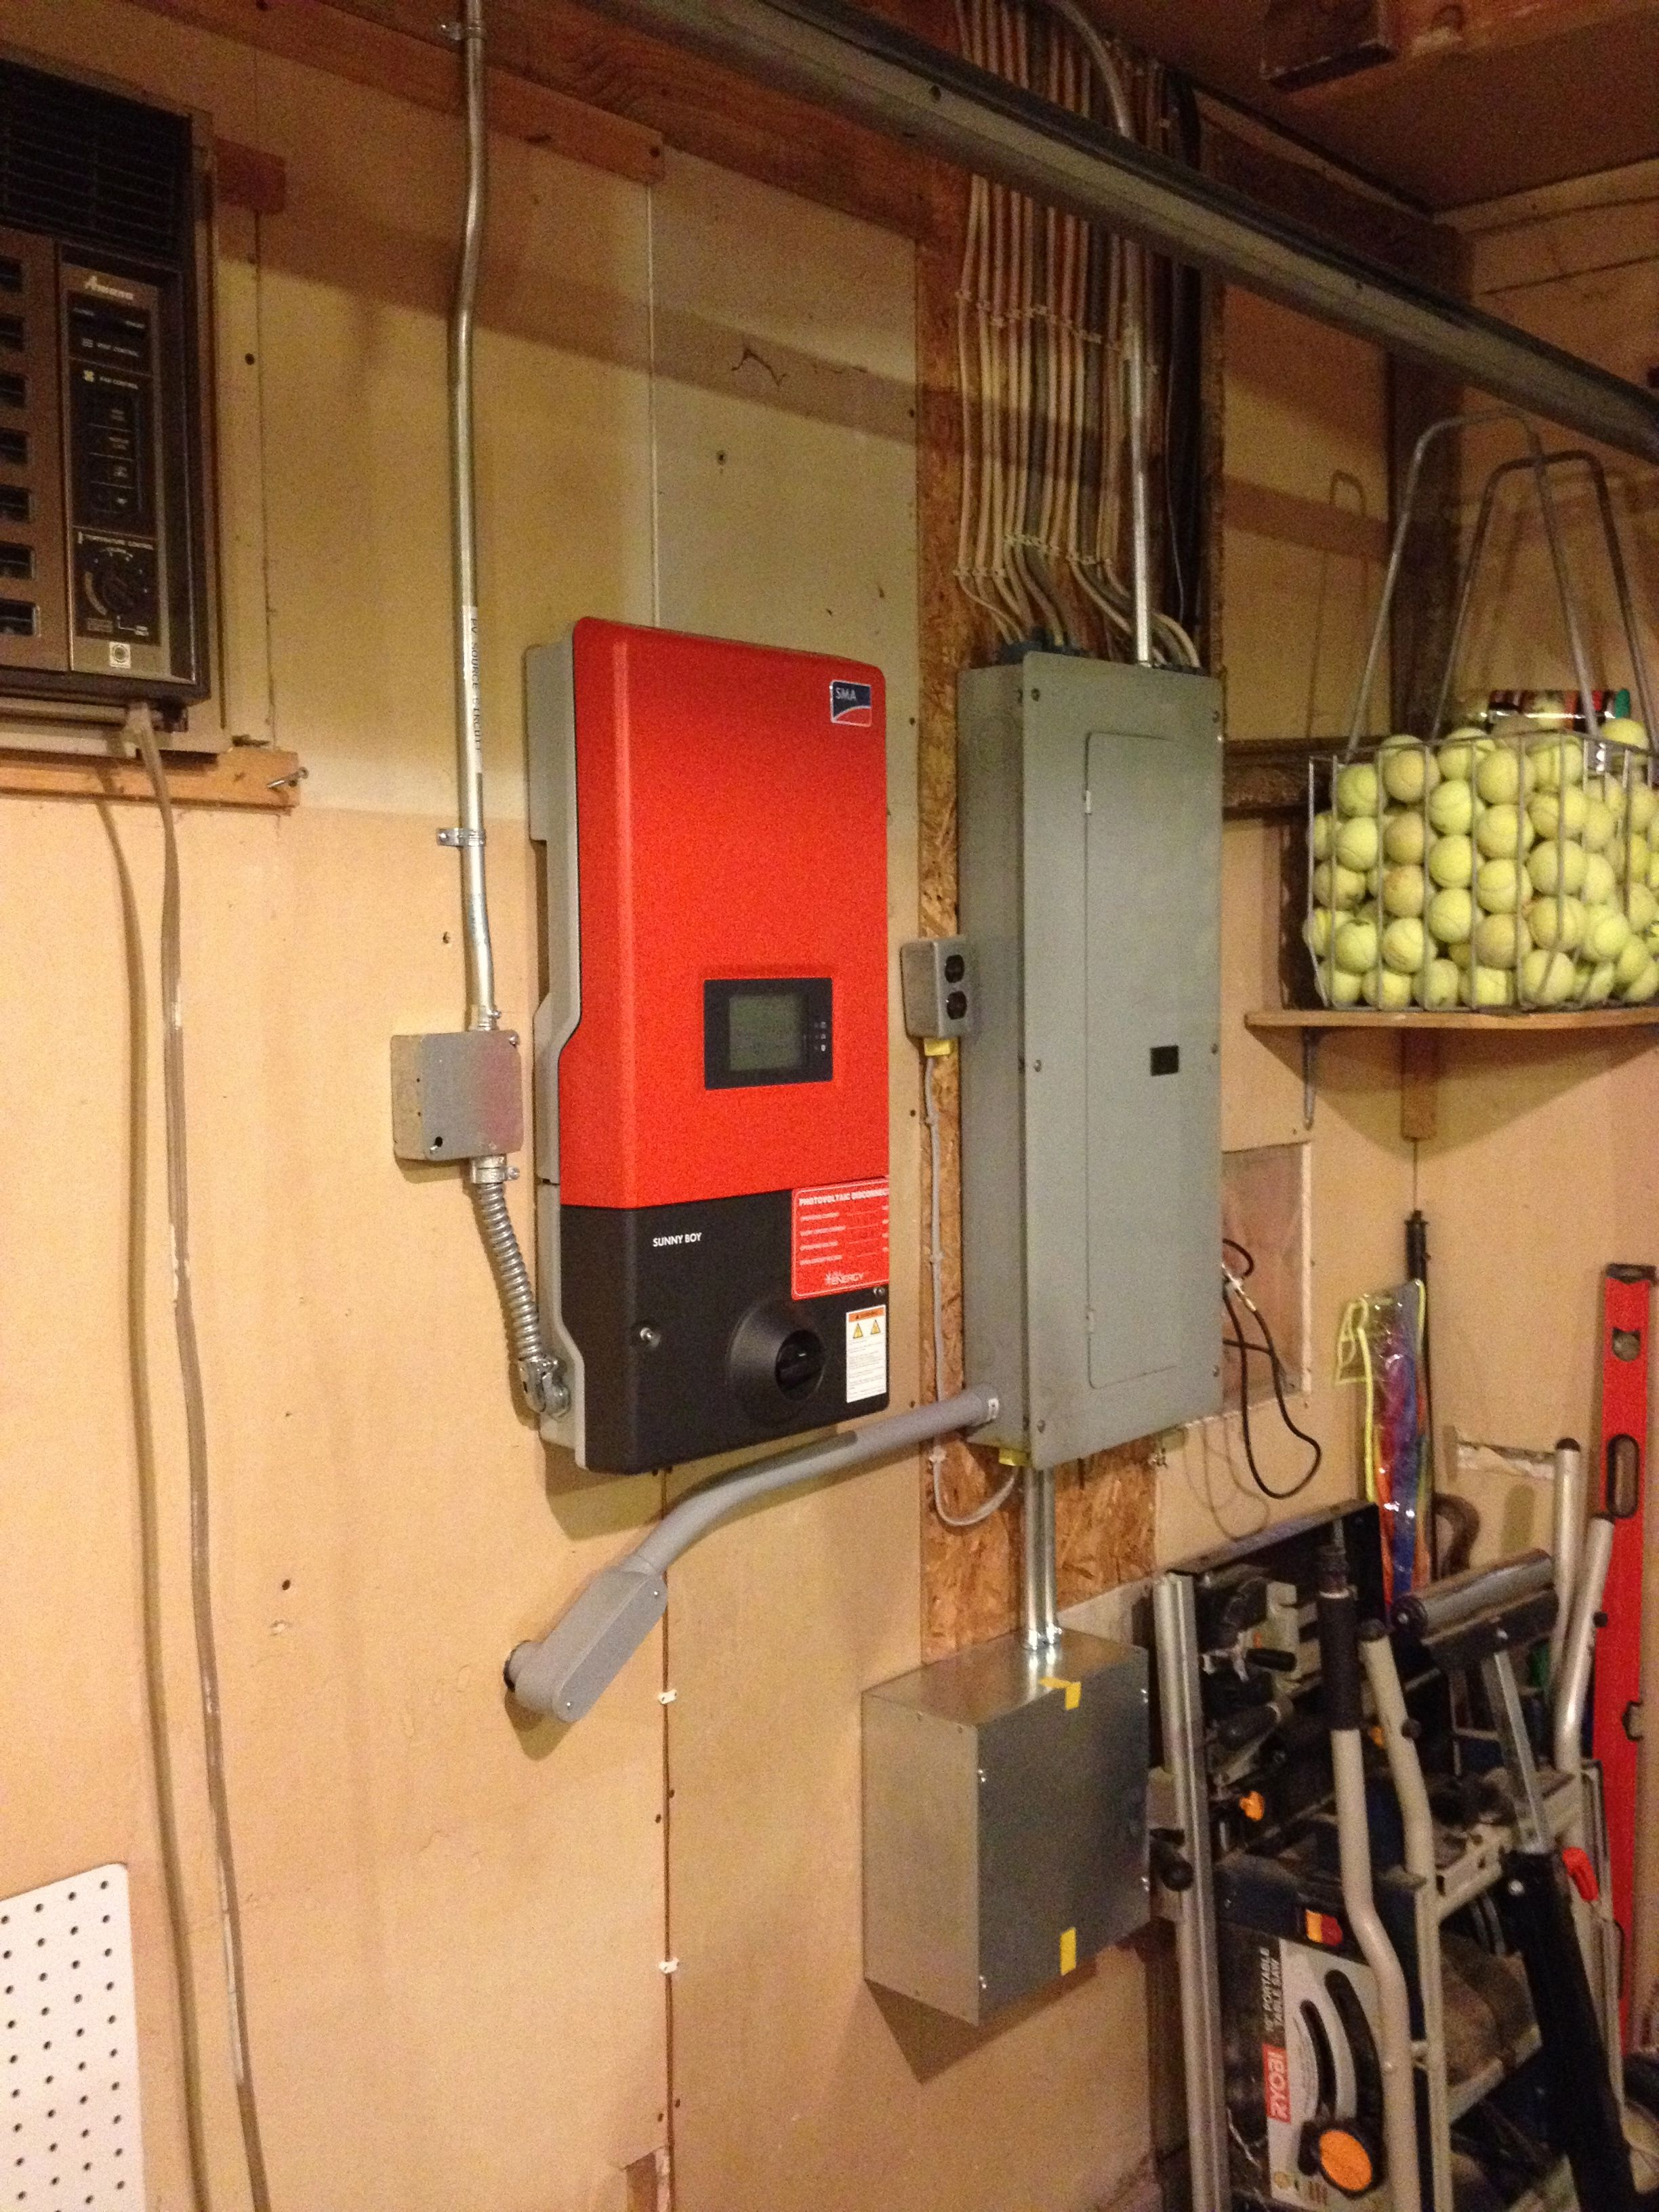 These new inverters are super sleek! Solar installation